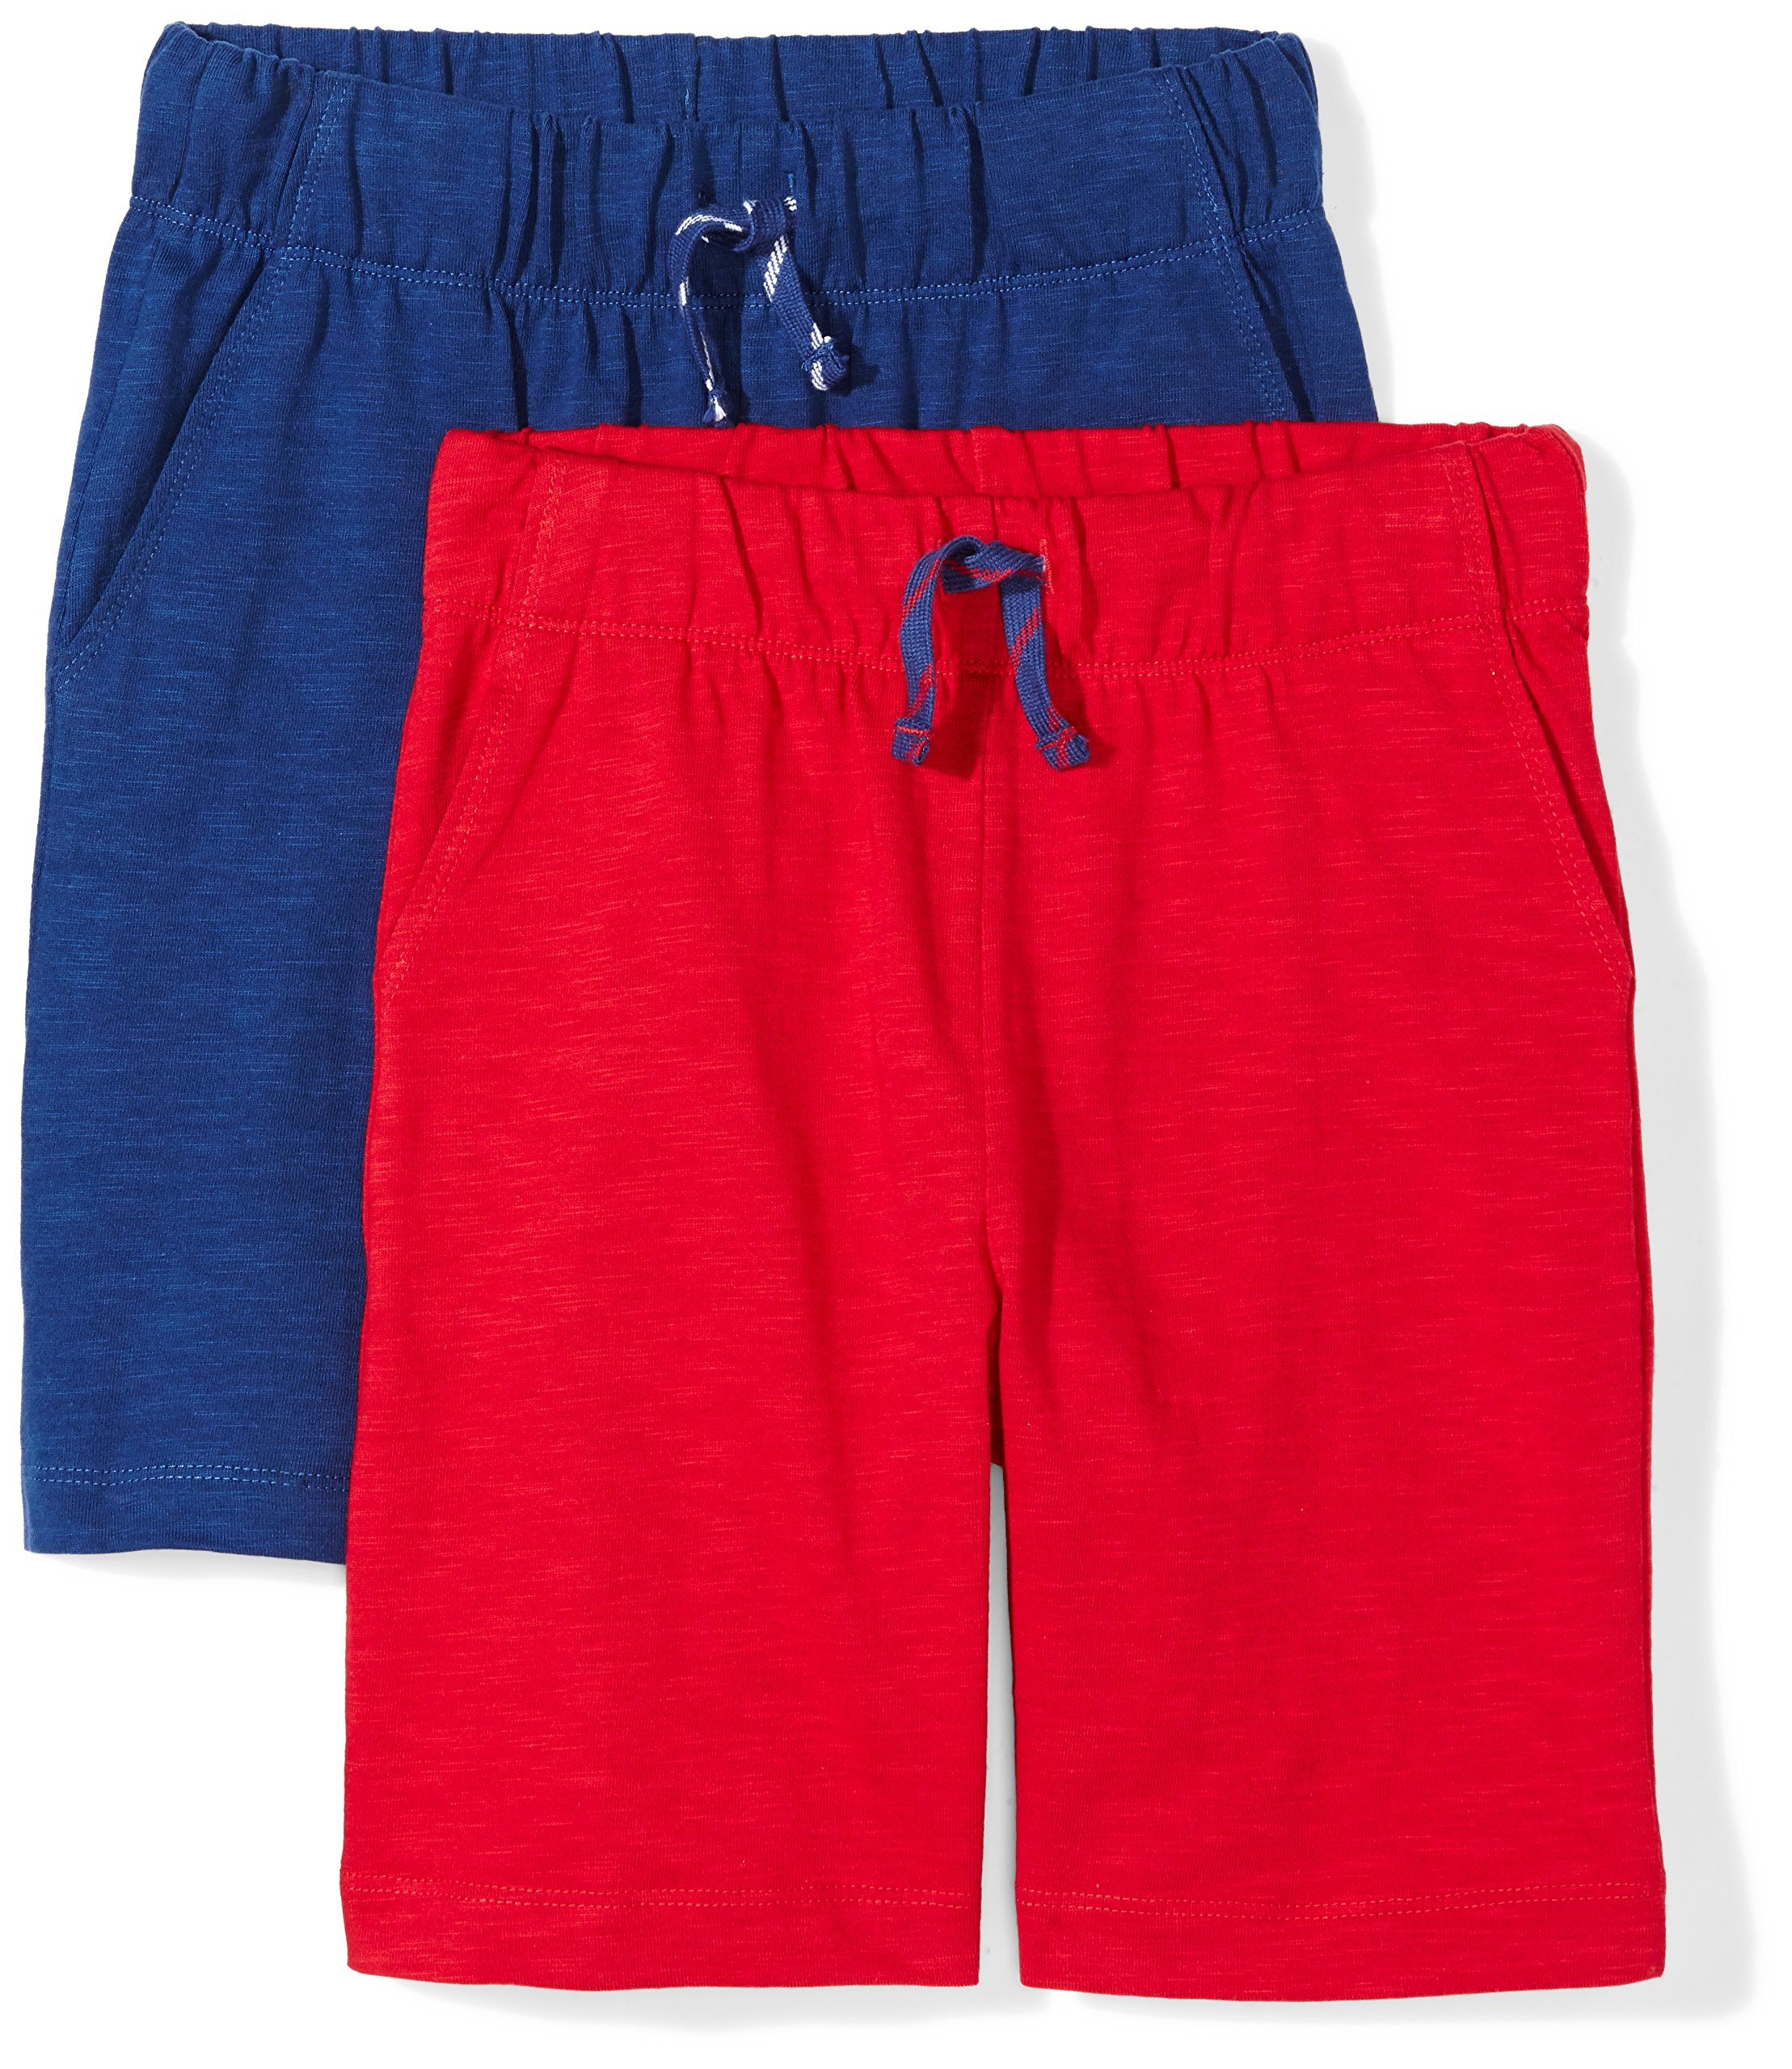 Spotted Zebra Boys' Toddler 2-Pack Jersey Knit Shorts, Blue/Red, 4T